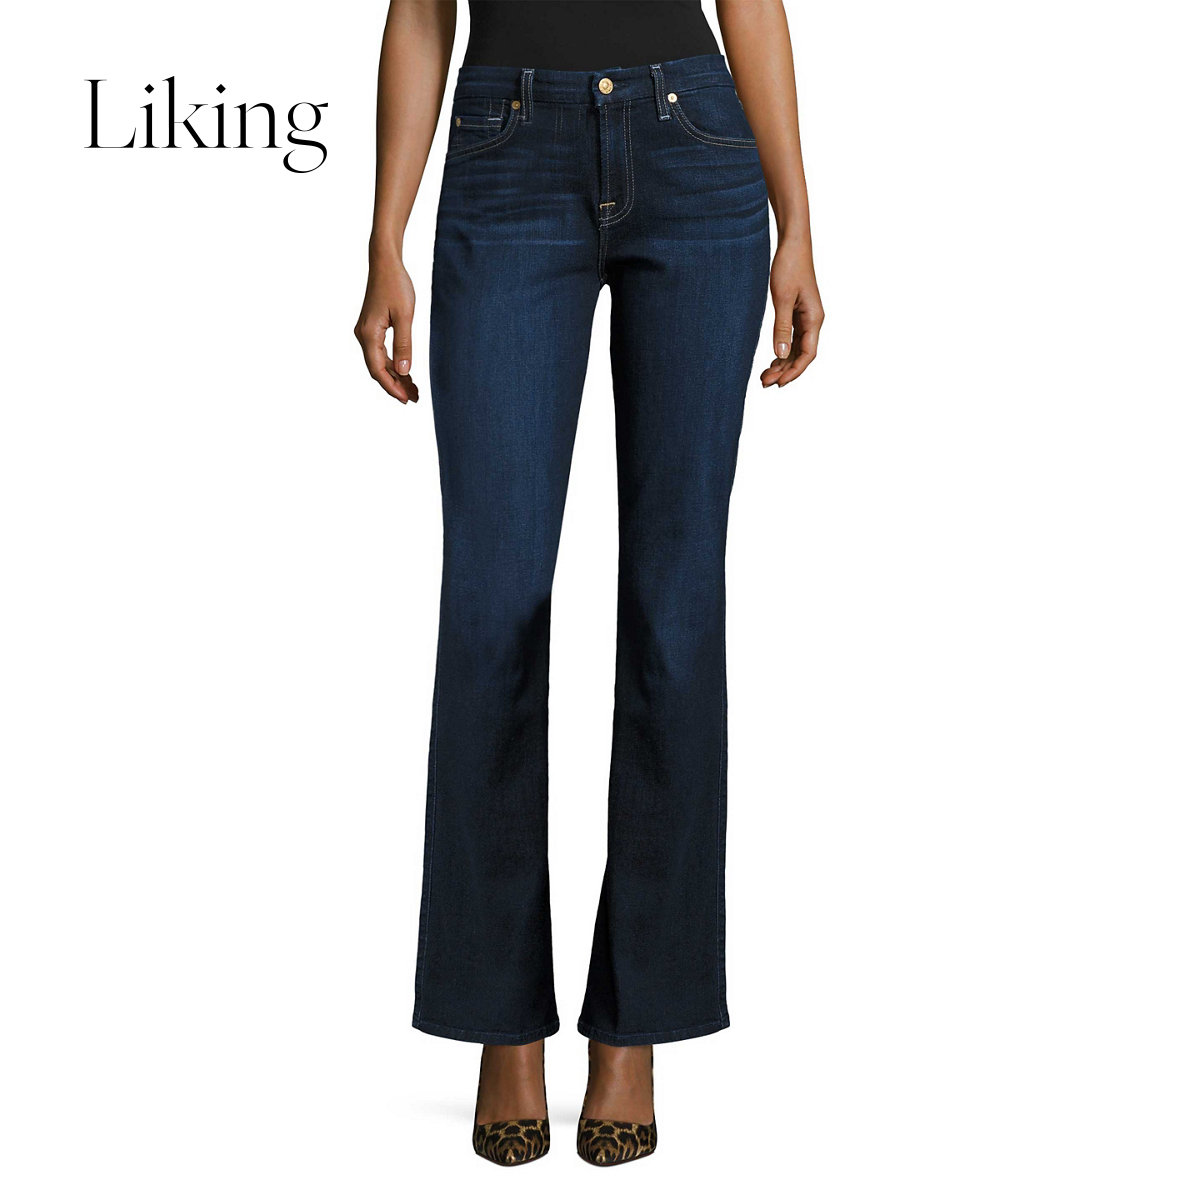 7 for all mankind game Ms. Wen Fu Ao Mander blue high waist bell bottom cotton jeans